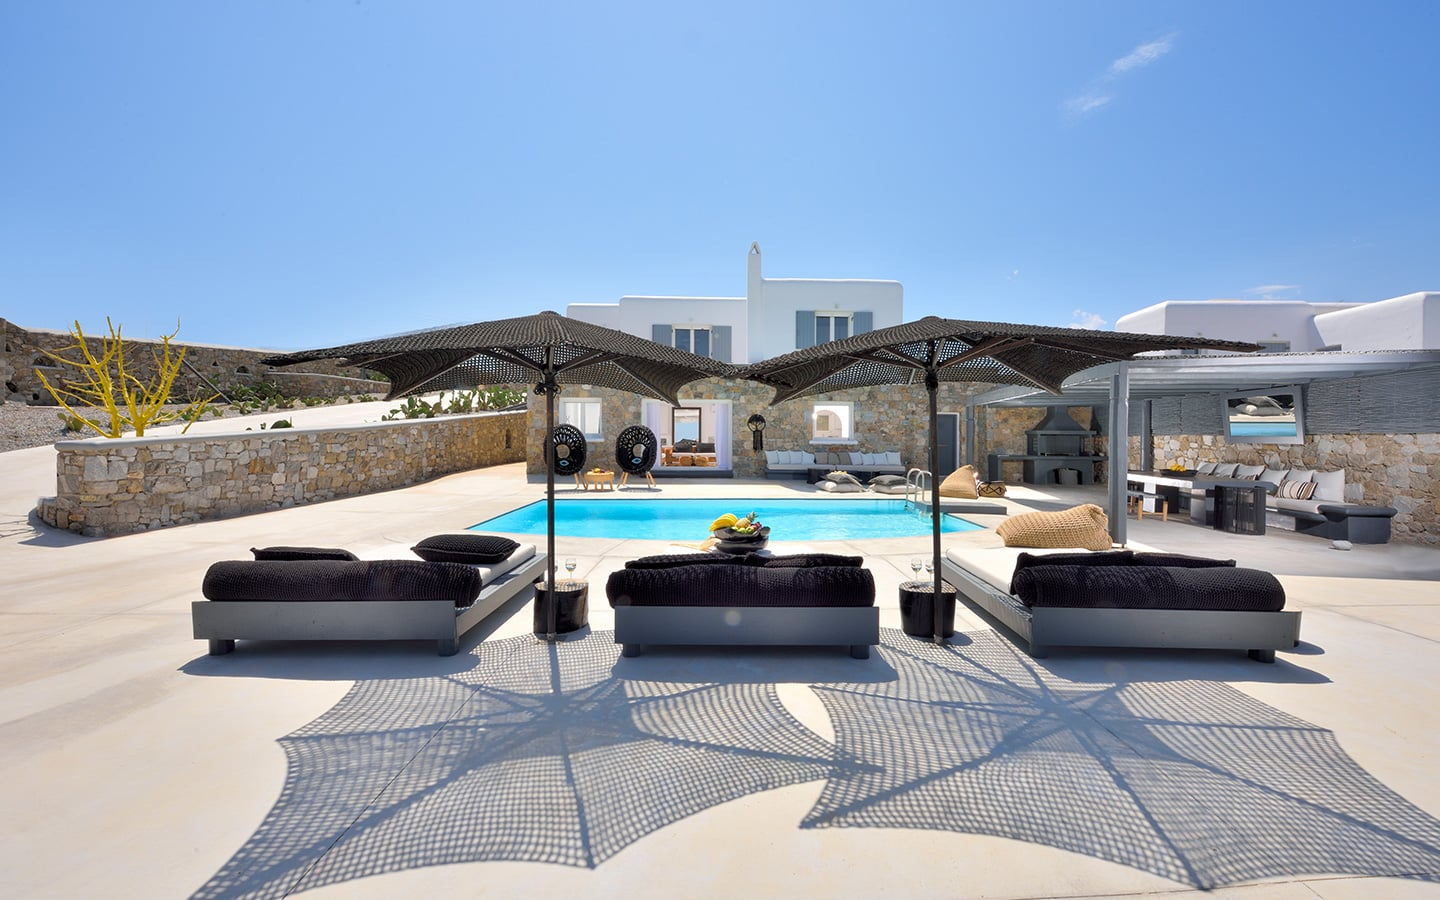 Comfortable beds and umbrella by the pool in a Mykonos Best luxury villa.